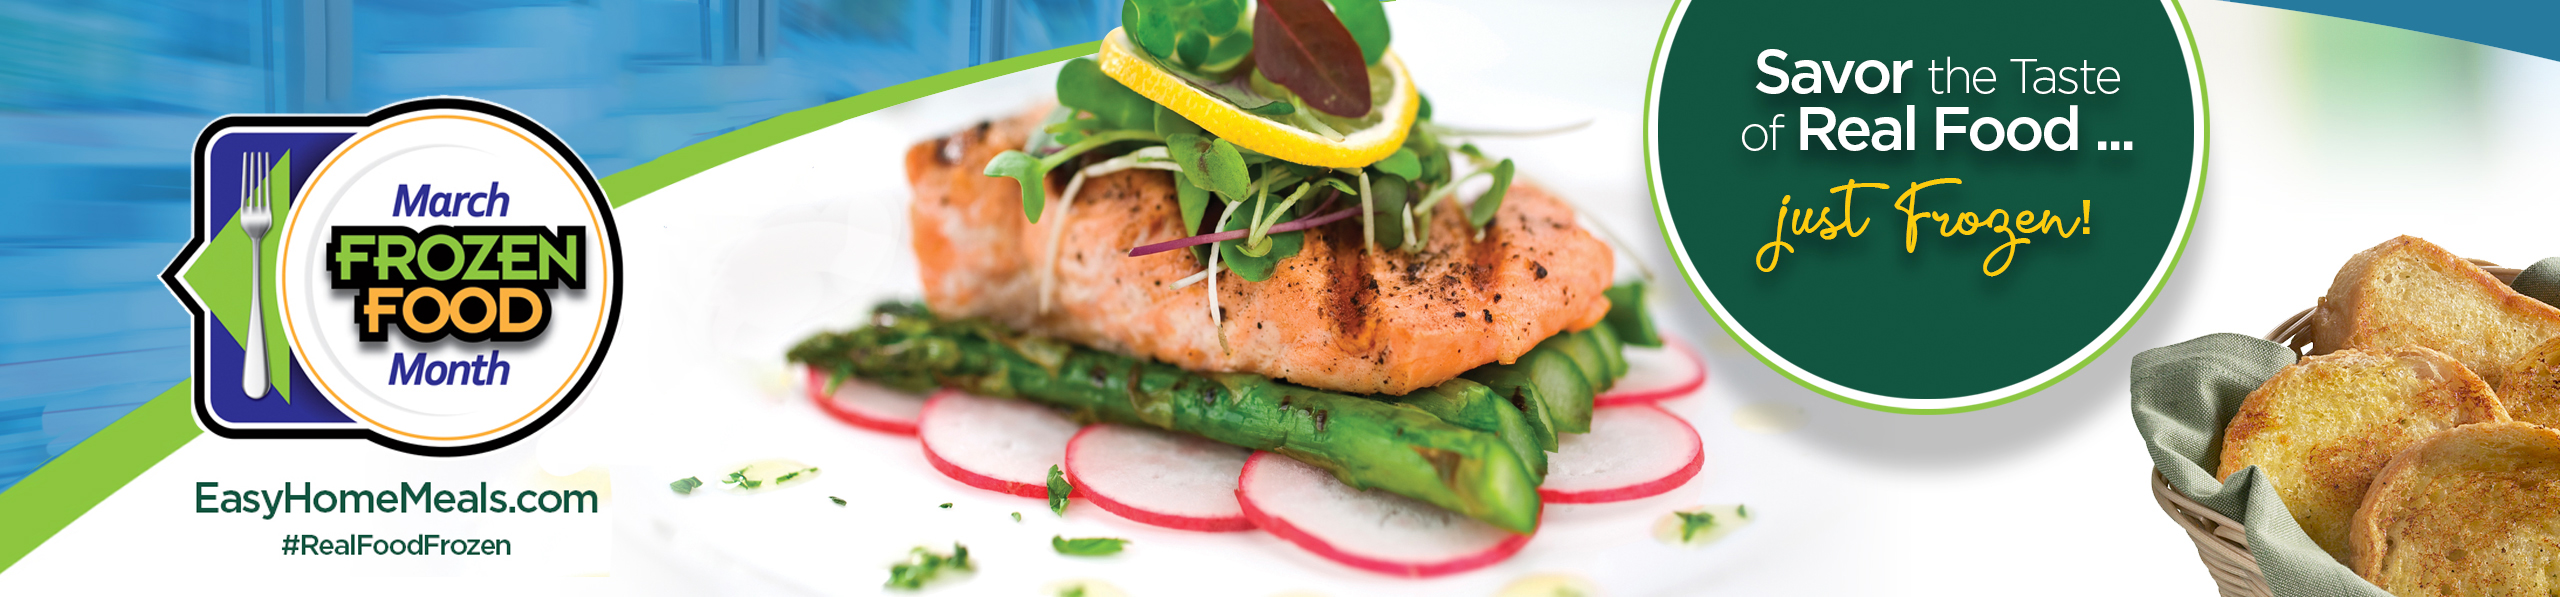 Salmon placed on asparagus, topped with various lettuce leaves.